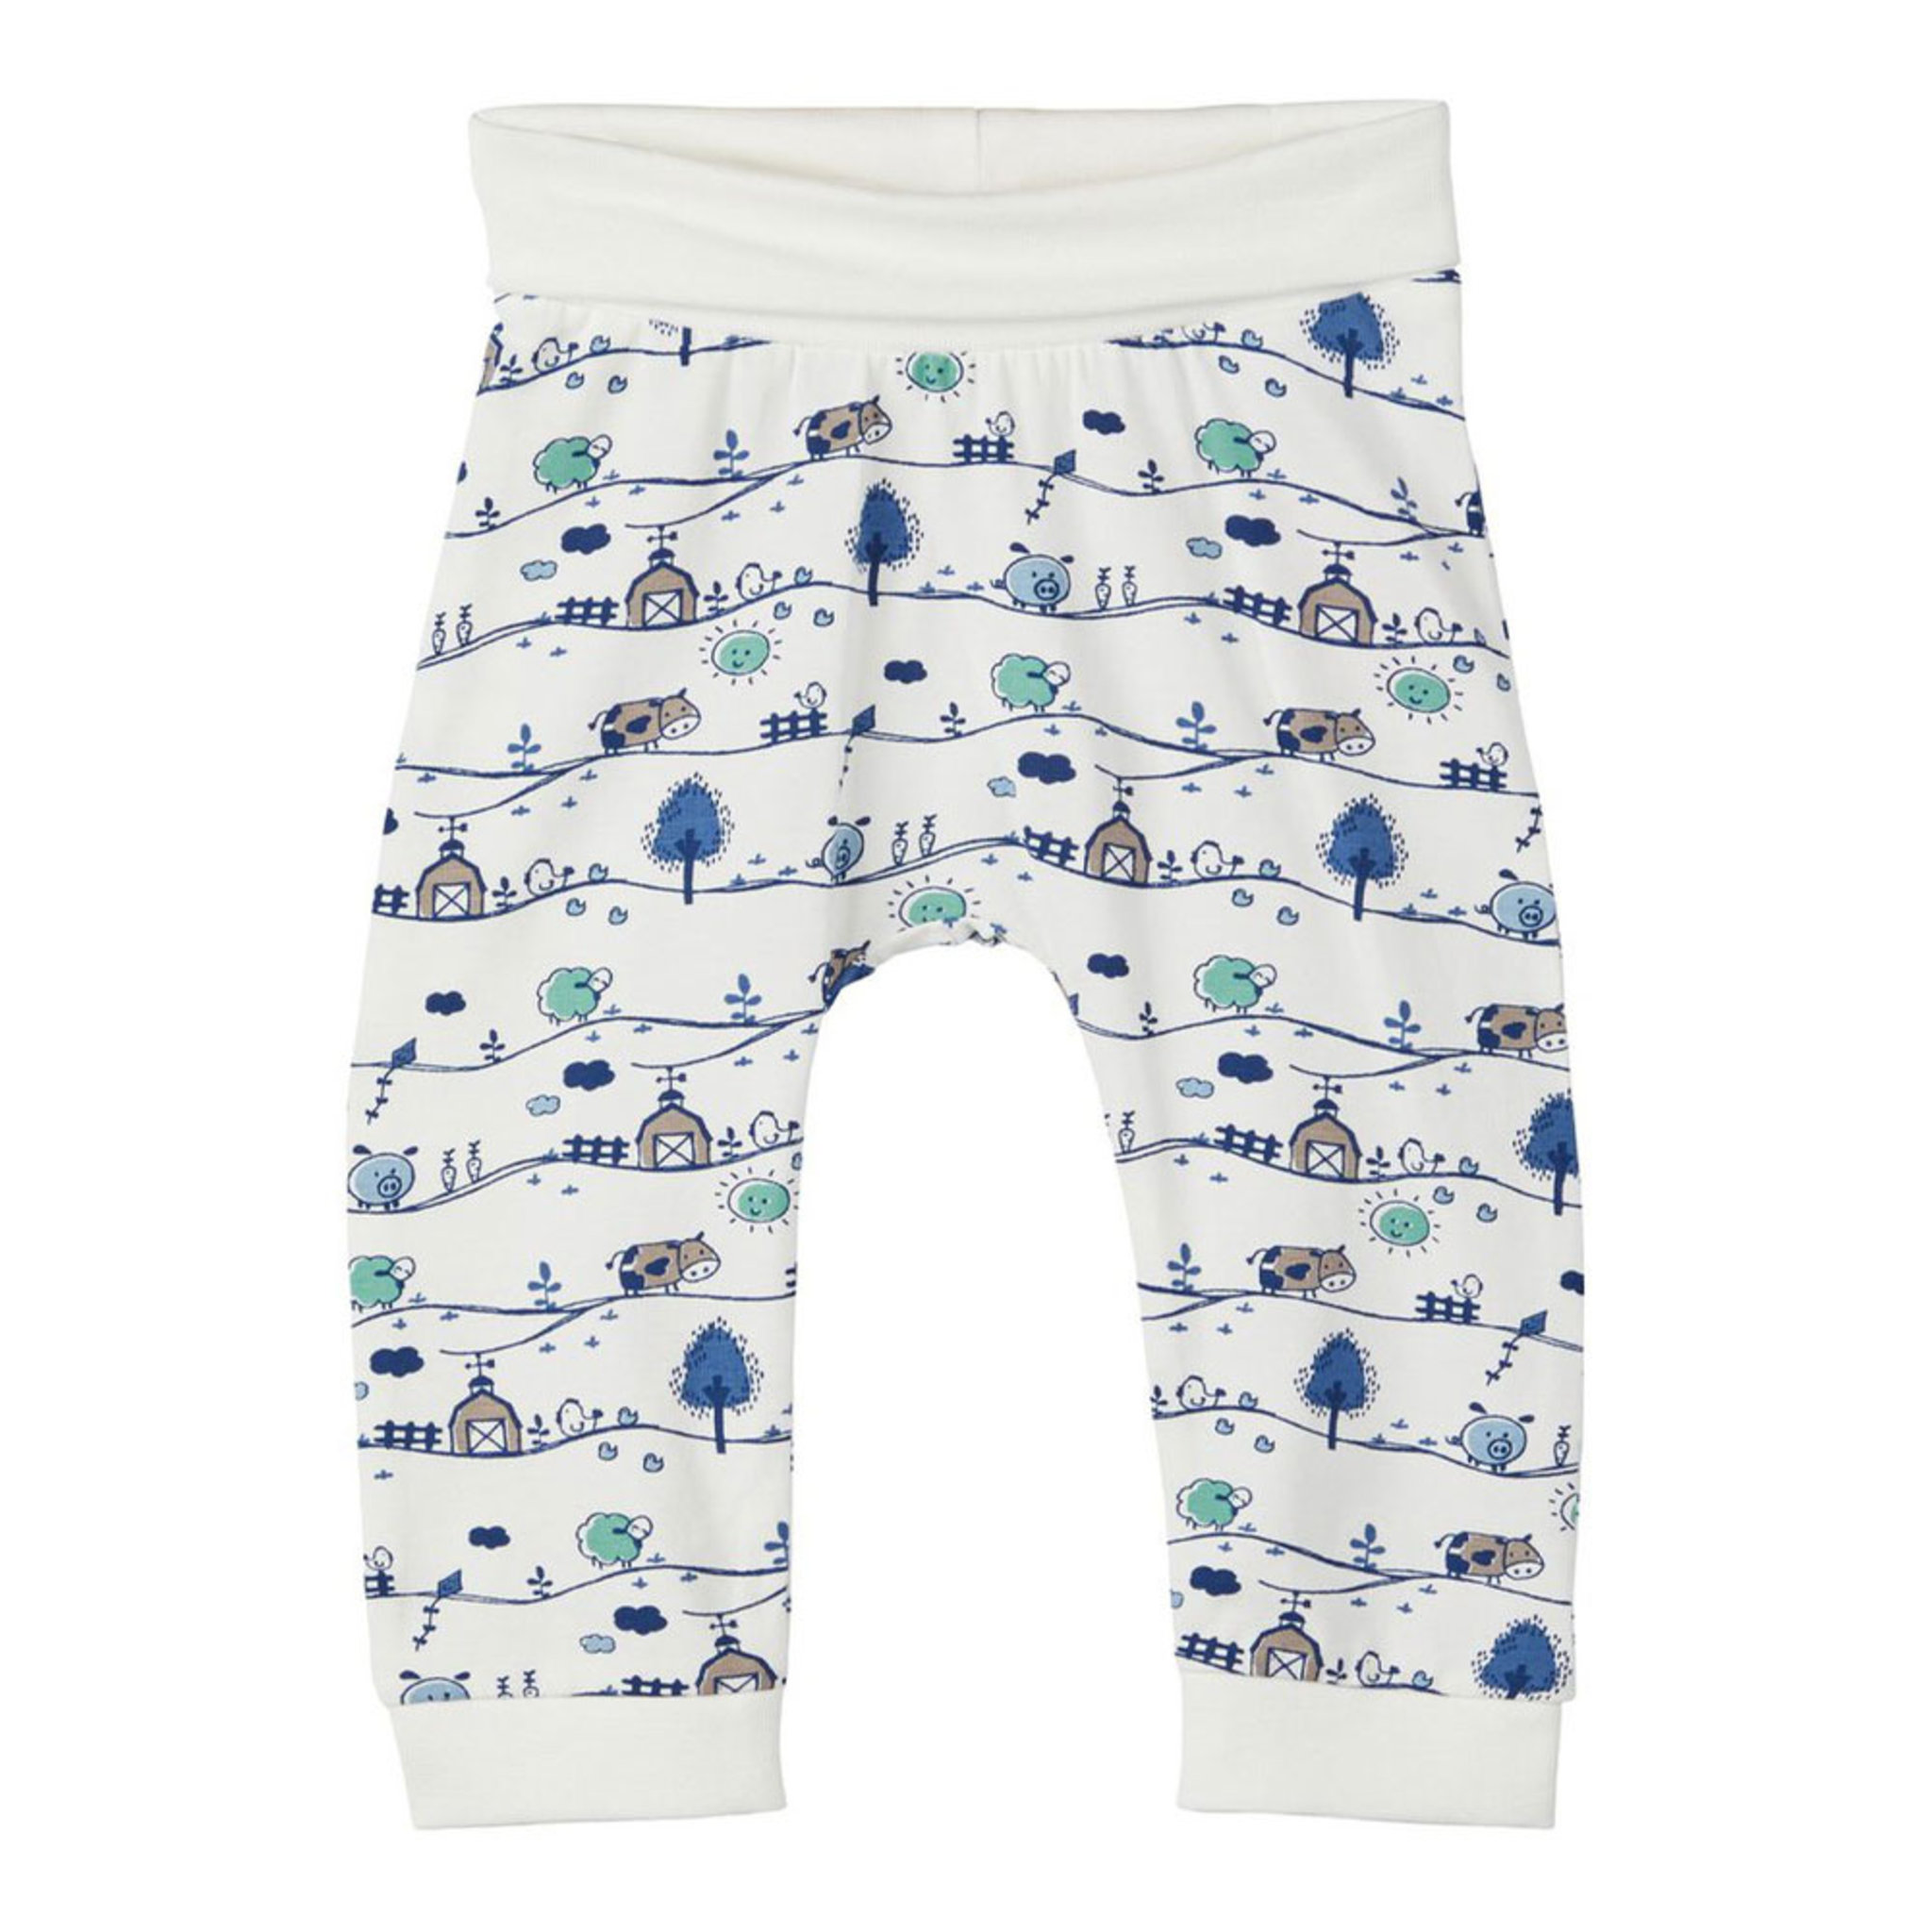 Printed-cotton Trousers